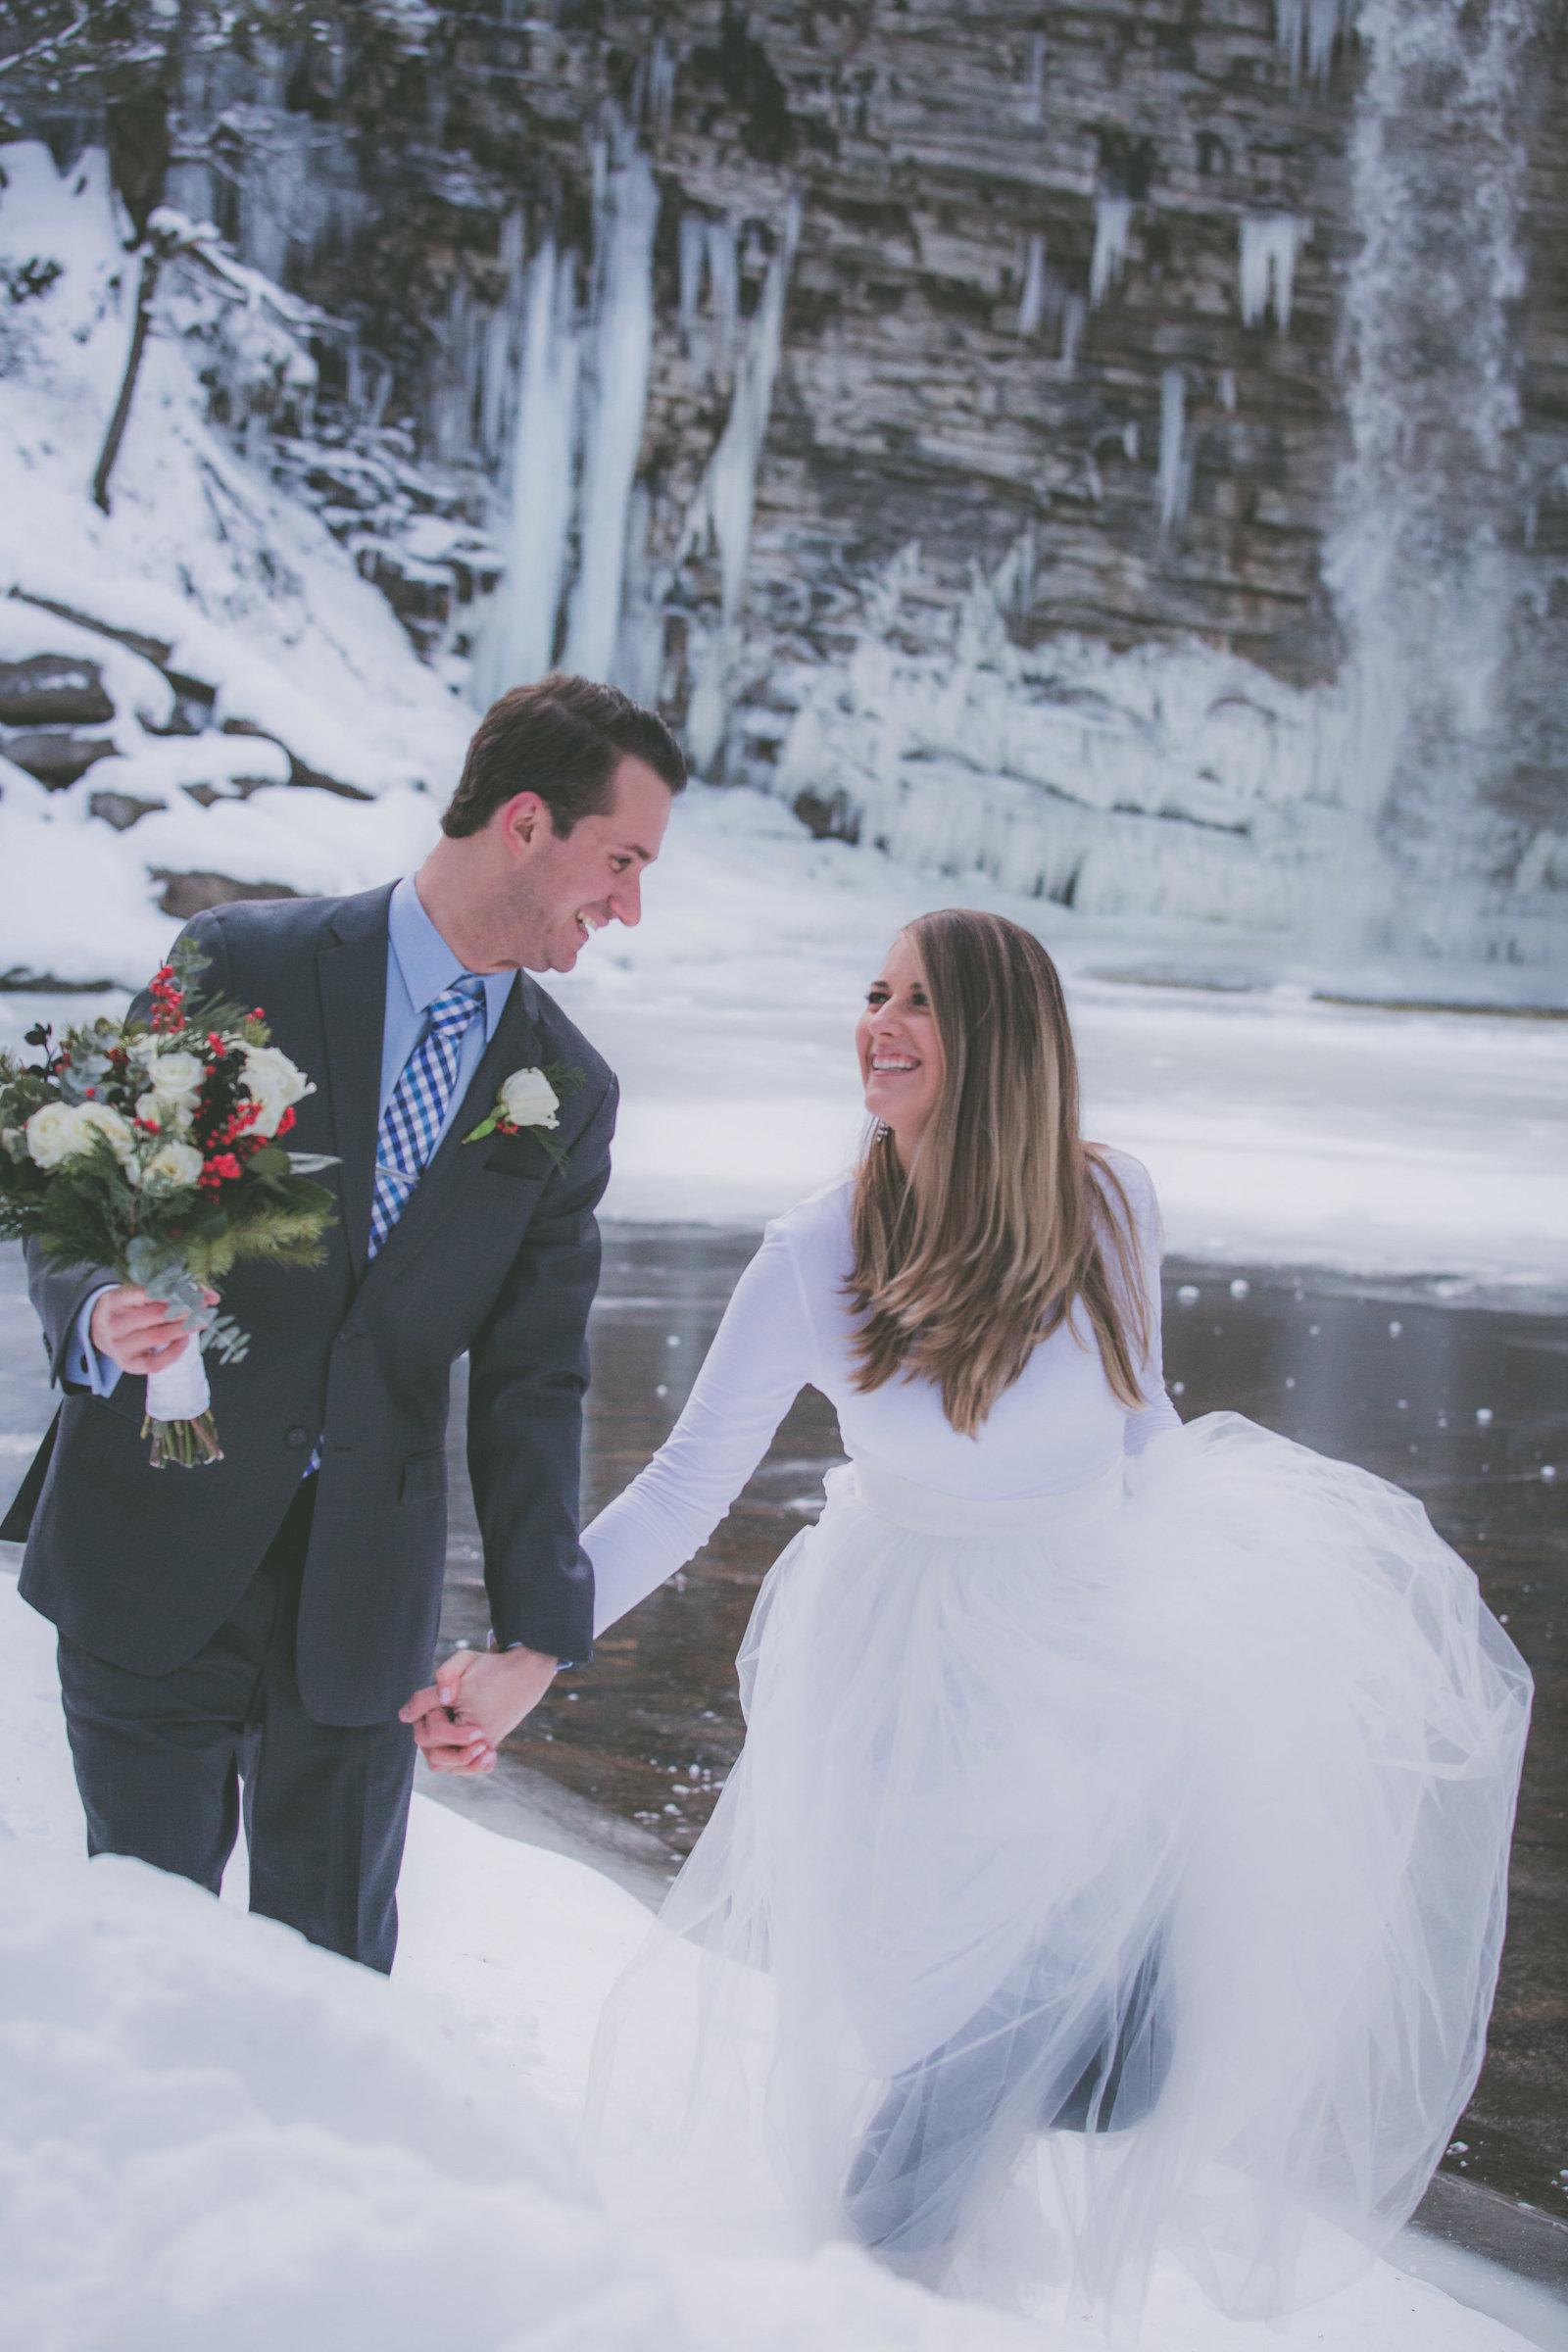 Bride and groom smiles and walks together through snow during their Upstate New York elopement.